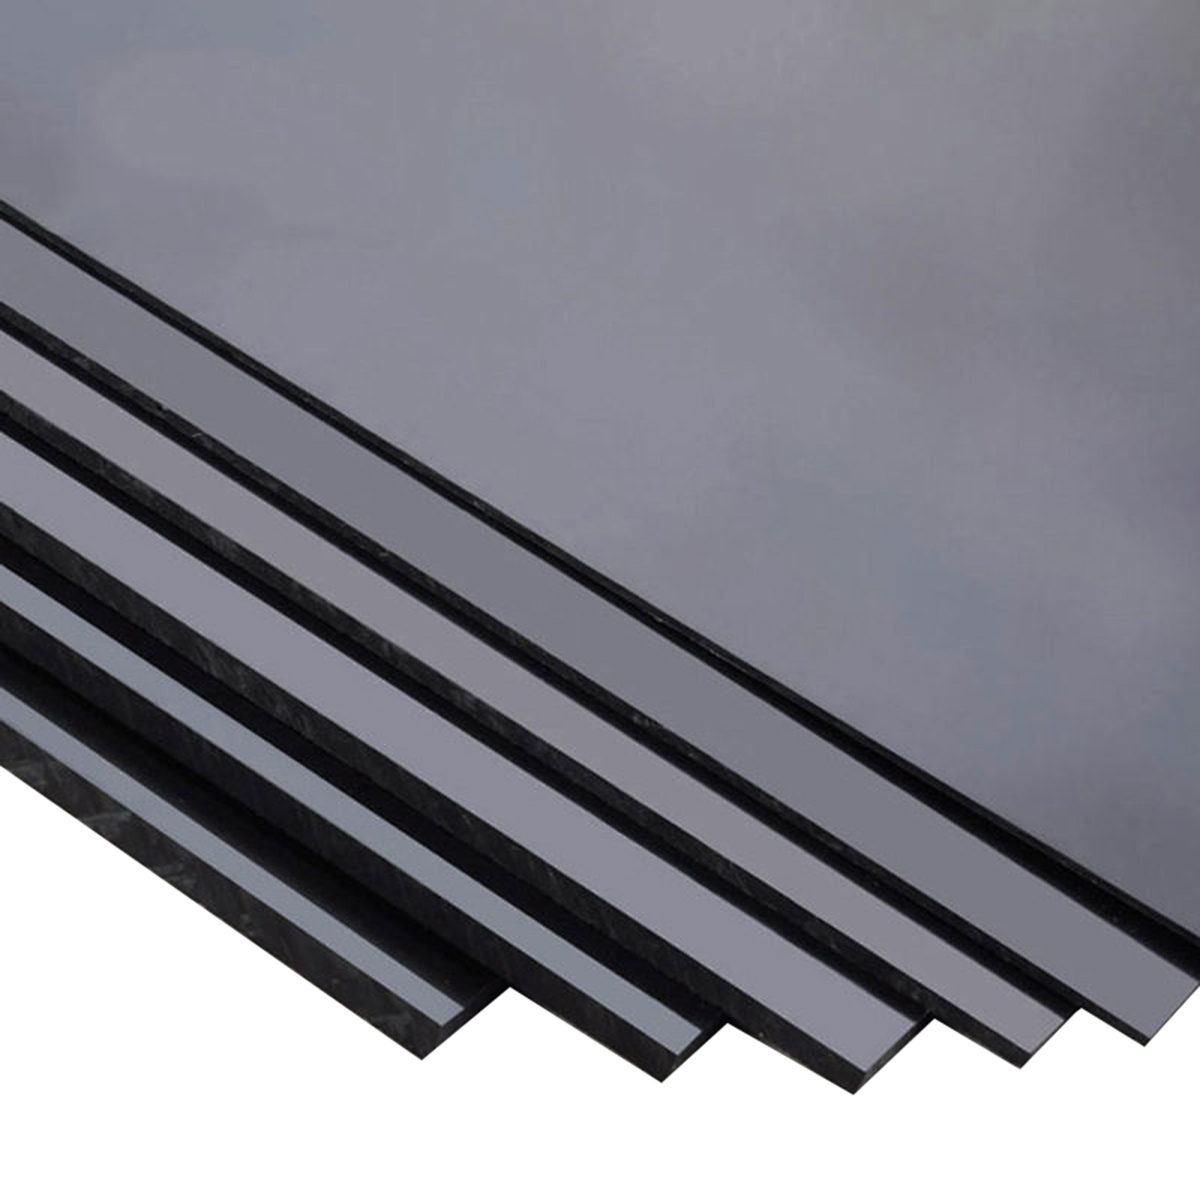 1 Piece Black ABS Styrene Plastic Plate Mayitr Durable Flat DIY Craft Supplies Plastic Sheet 0.5  sc 1 st  AliExpress.com & 1 Piece Black ABS Styrene Plastic Plate Mayitr Durable Flat DIY ...